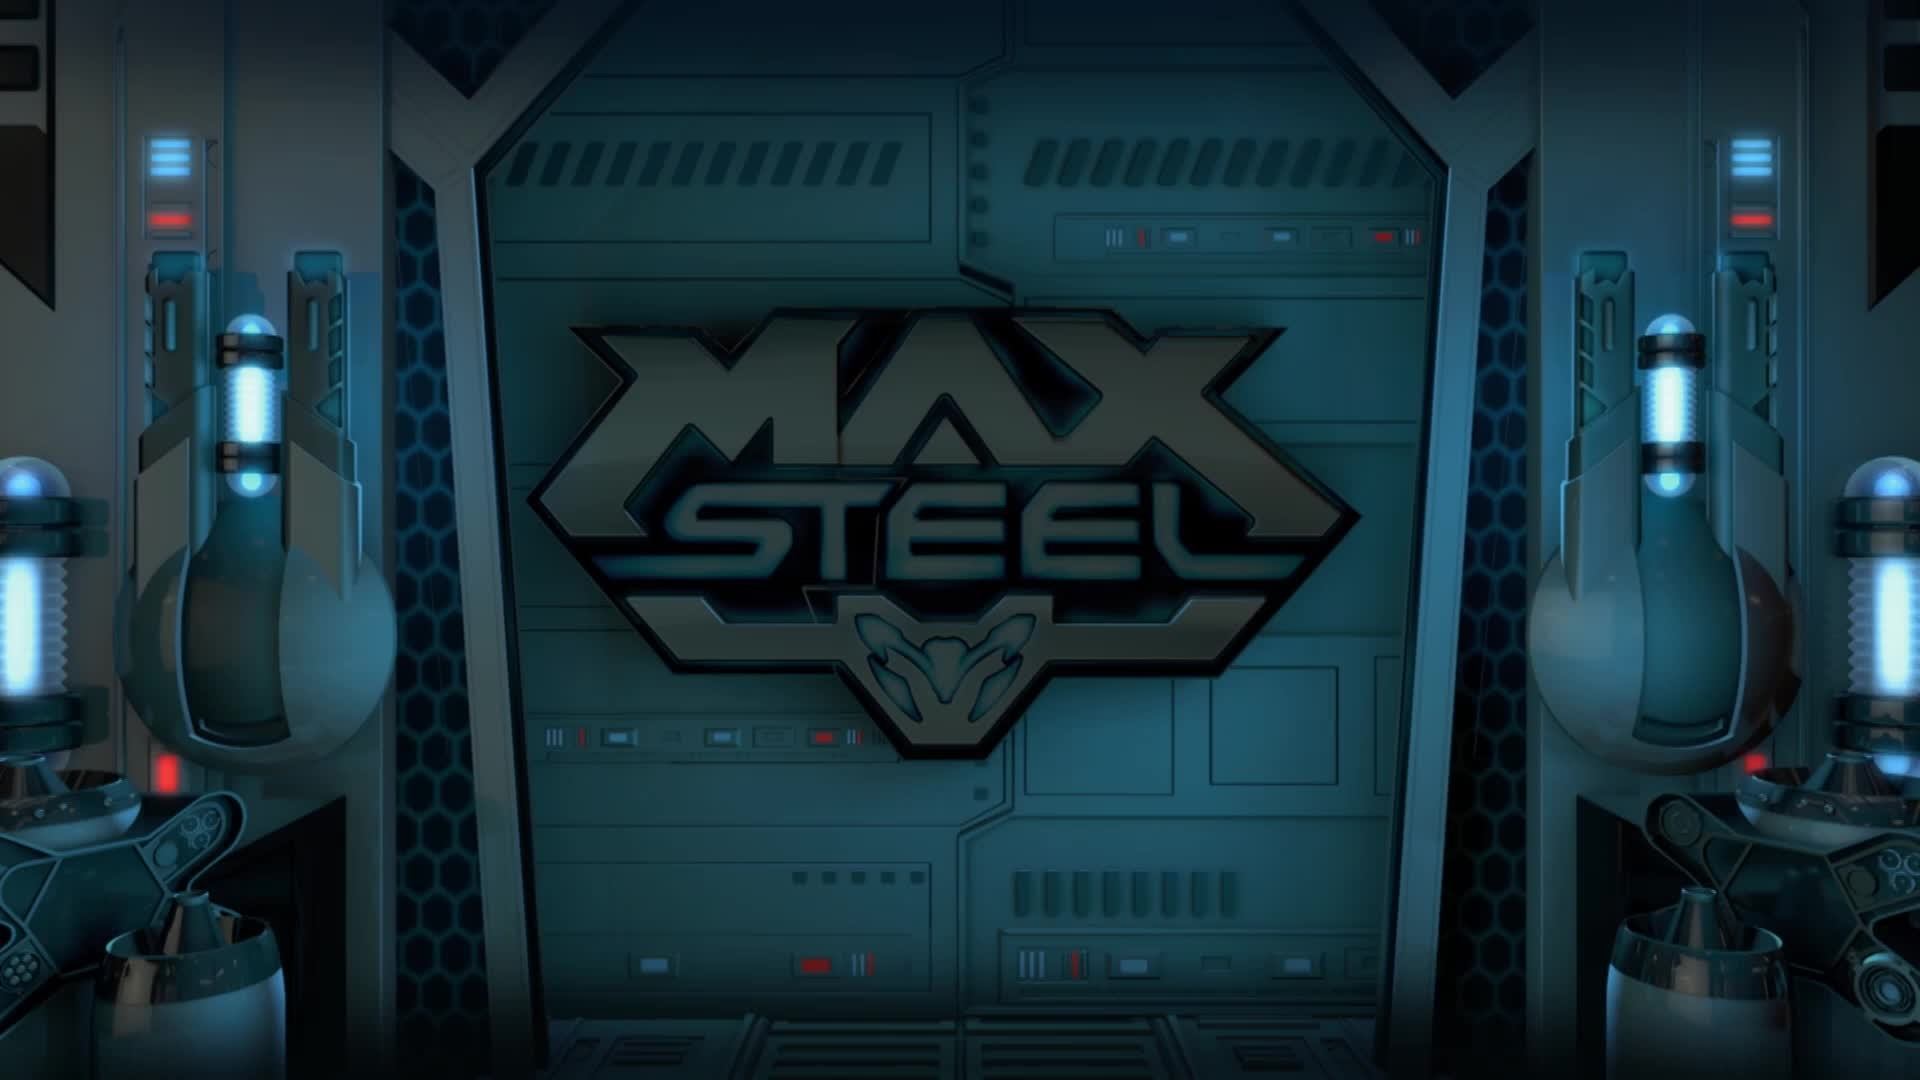 Max Steel Turbo Despegue vs Mega Morphos Video Image